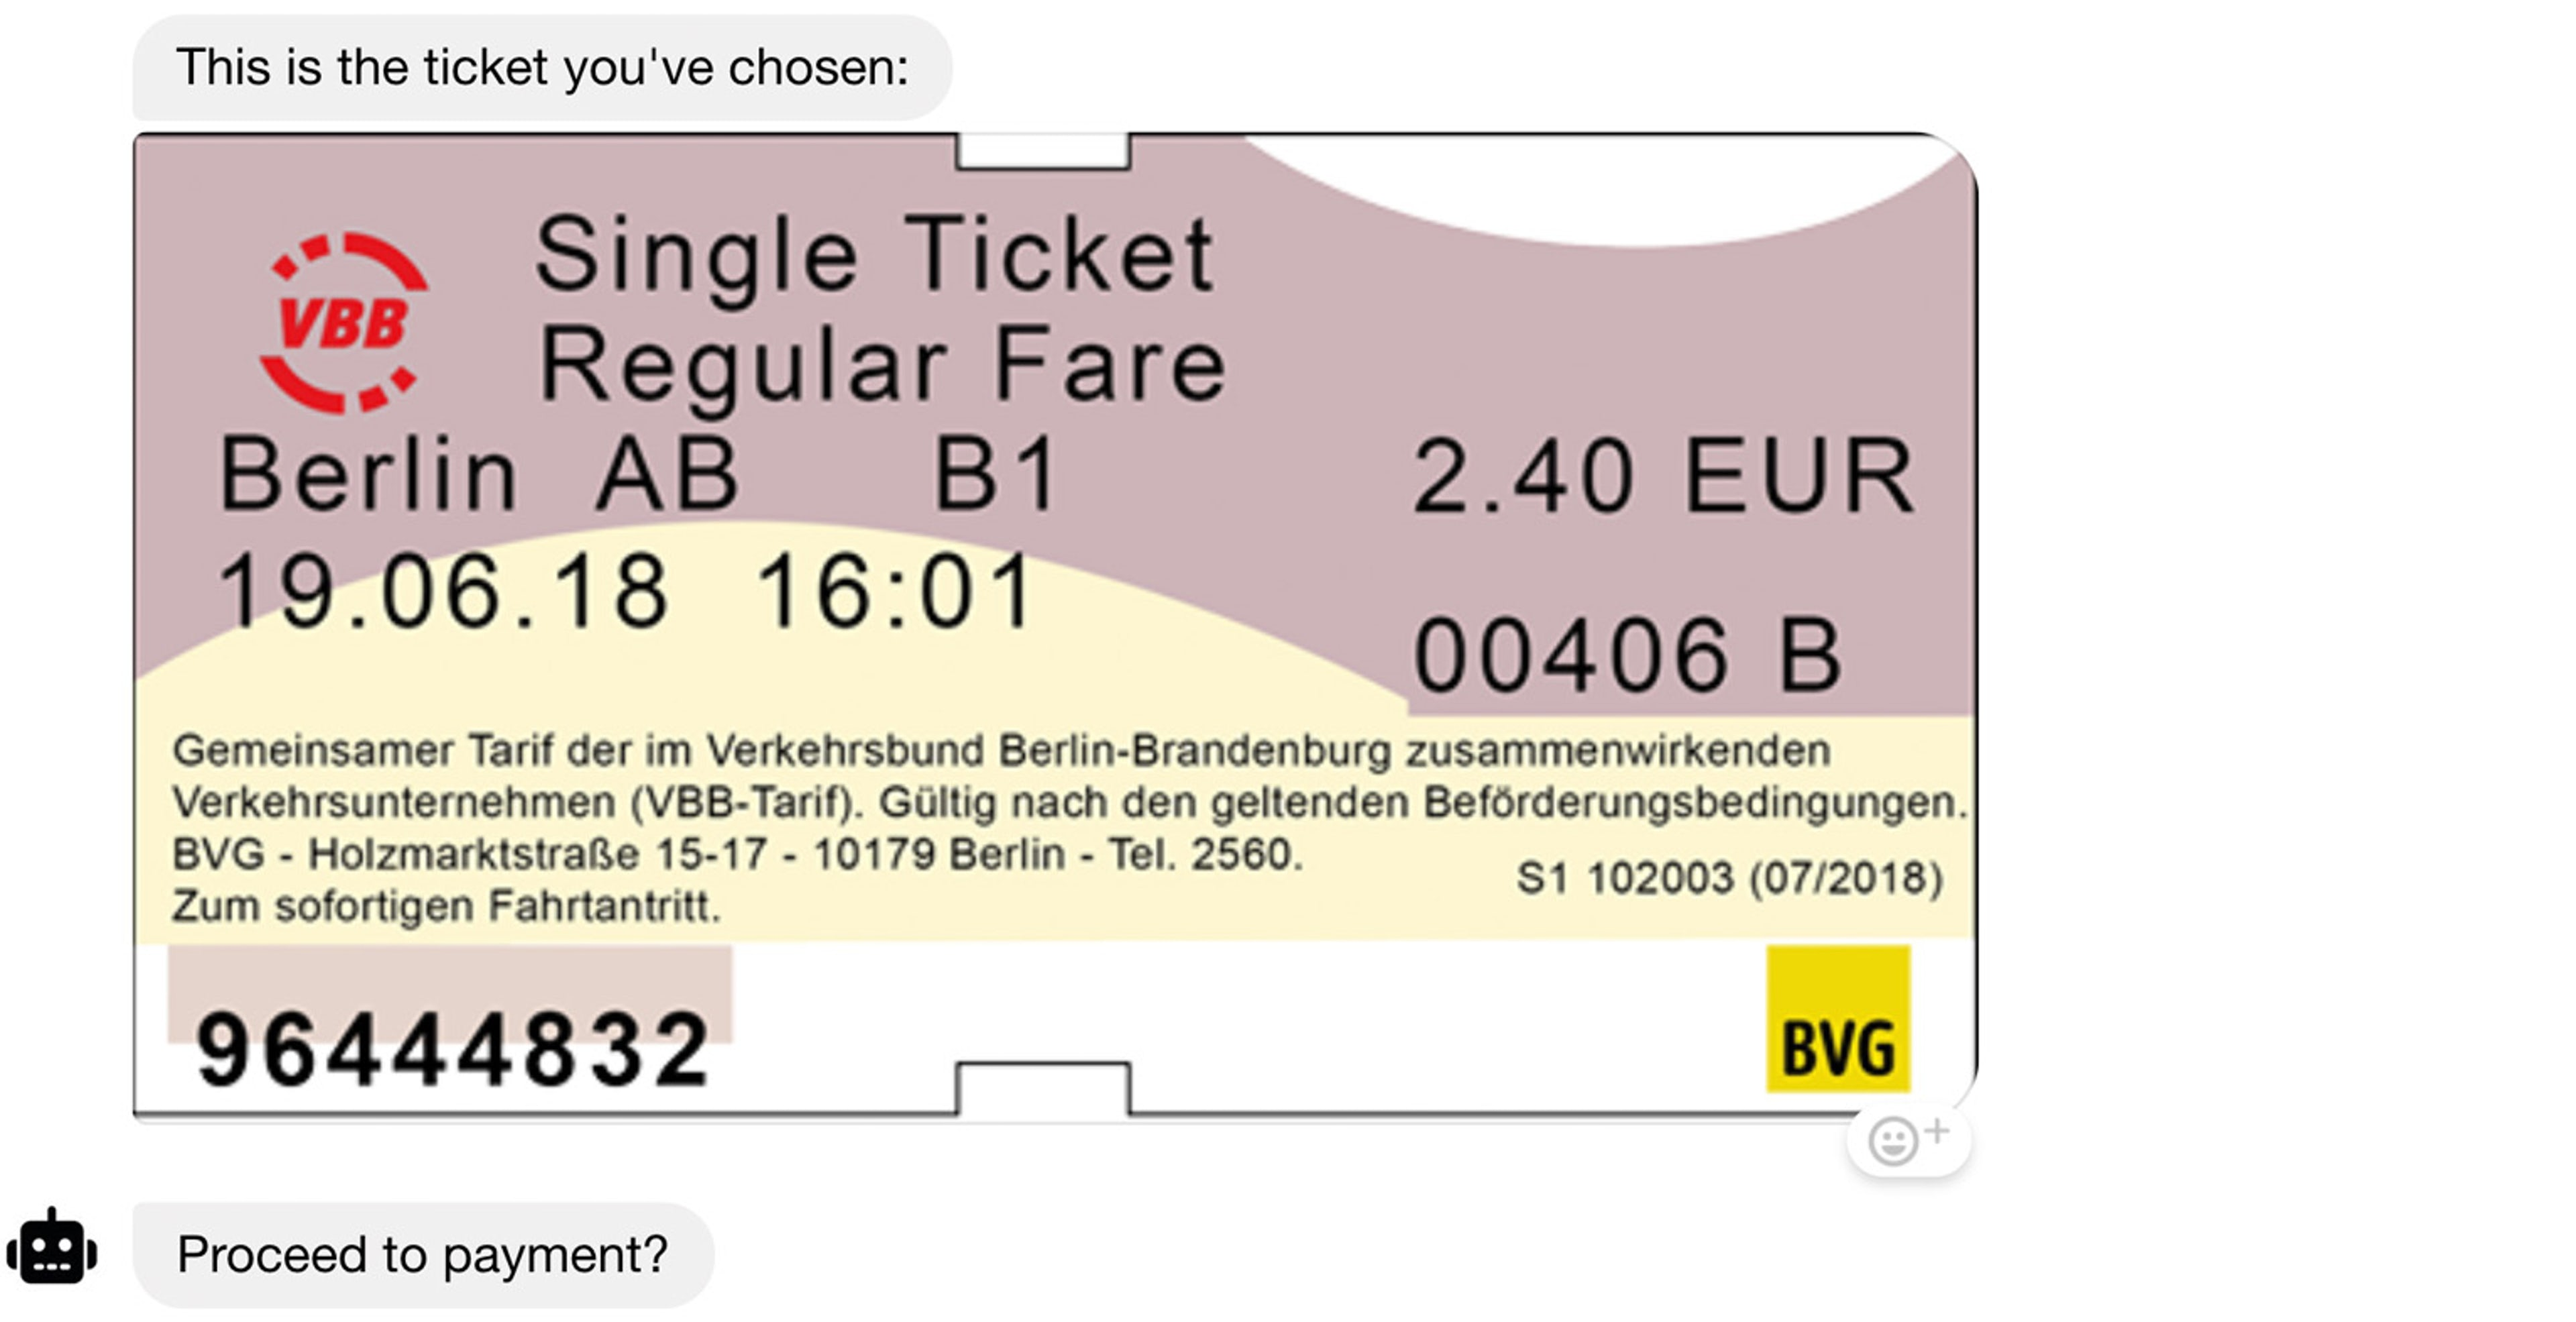 a visual representation of a train ticket helps users recognize immediately what is going on